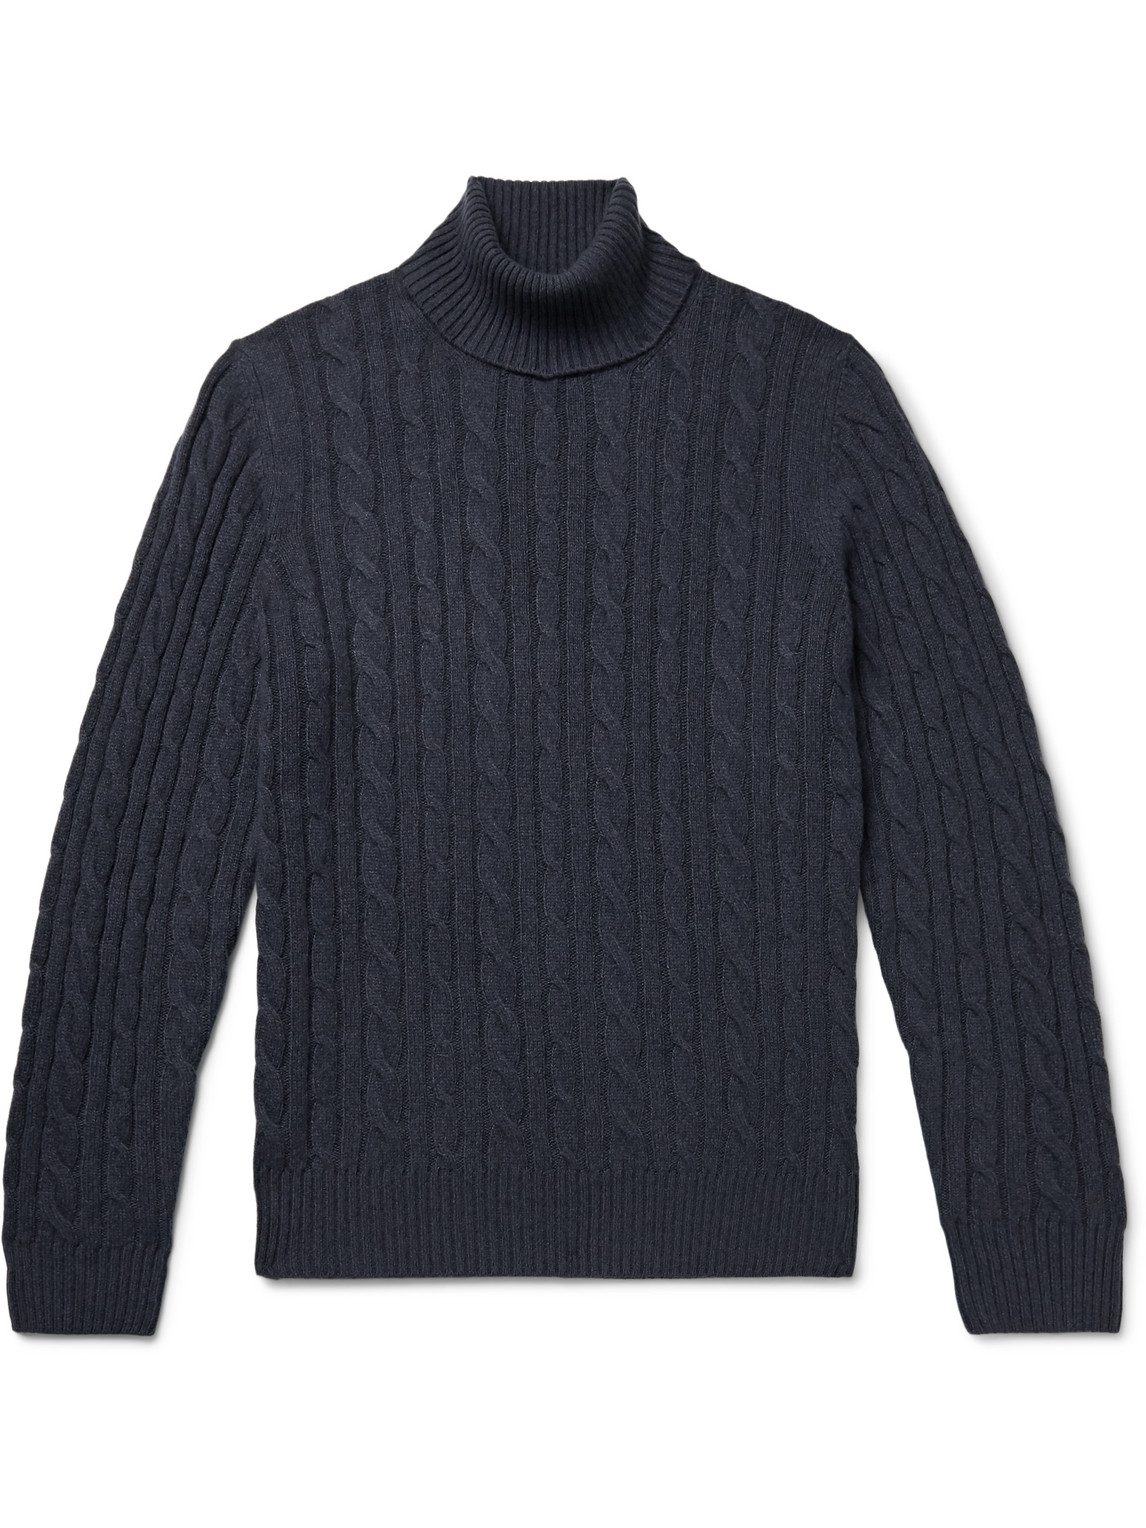 loro piana - cable-knit baby cashmere rollneck sweater - men - blue - it 52